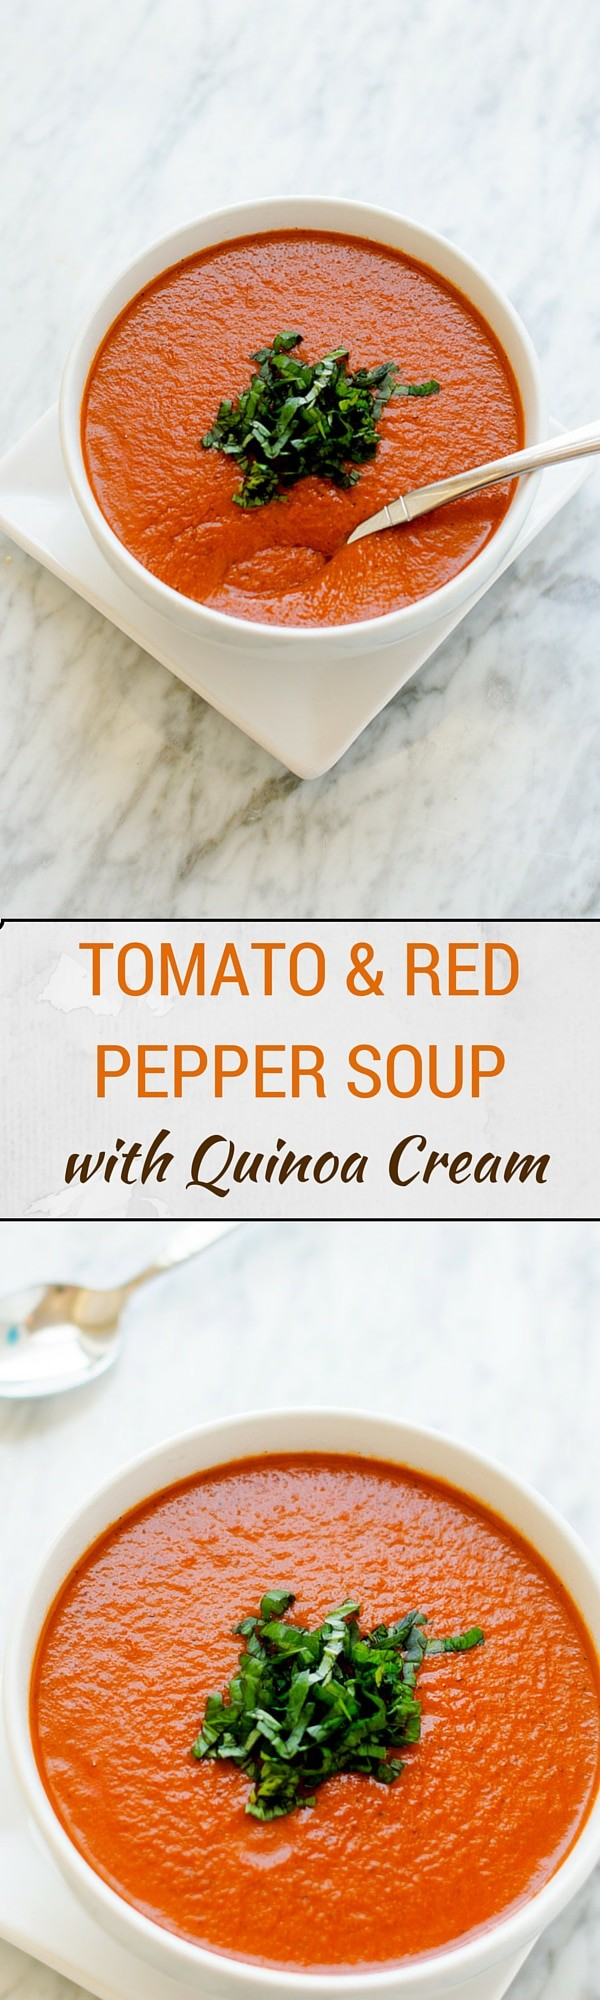 Tomato & Red Pepper Soup - This easy to make soup is packed with flavor and so amazing!  I replaced heavy cream with my (vegan) quinoa cream and it was fabulous. - WendyPolisi.com